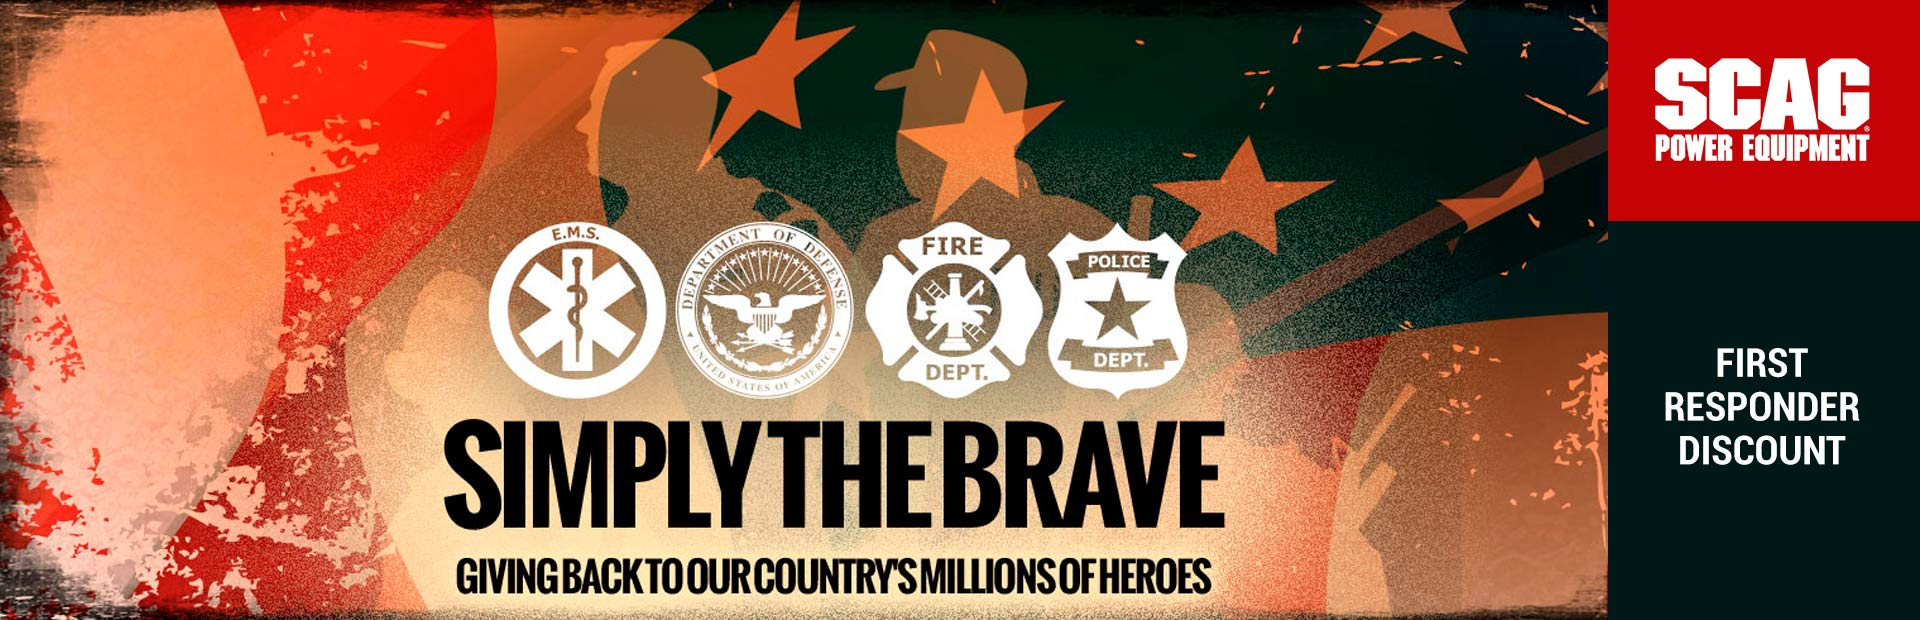 Scag: Simply the Brave-First Responder Discount Program